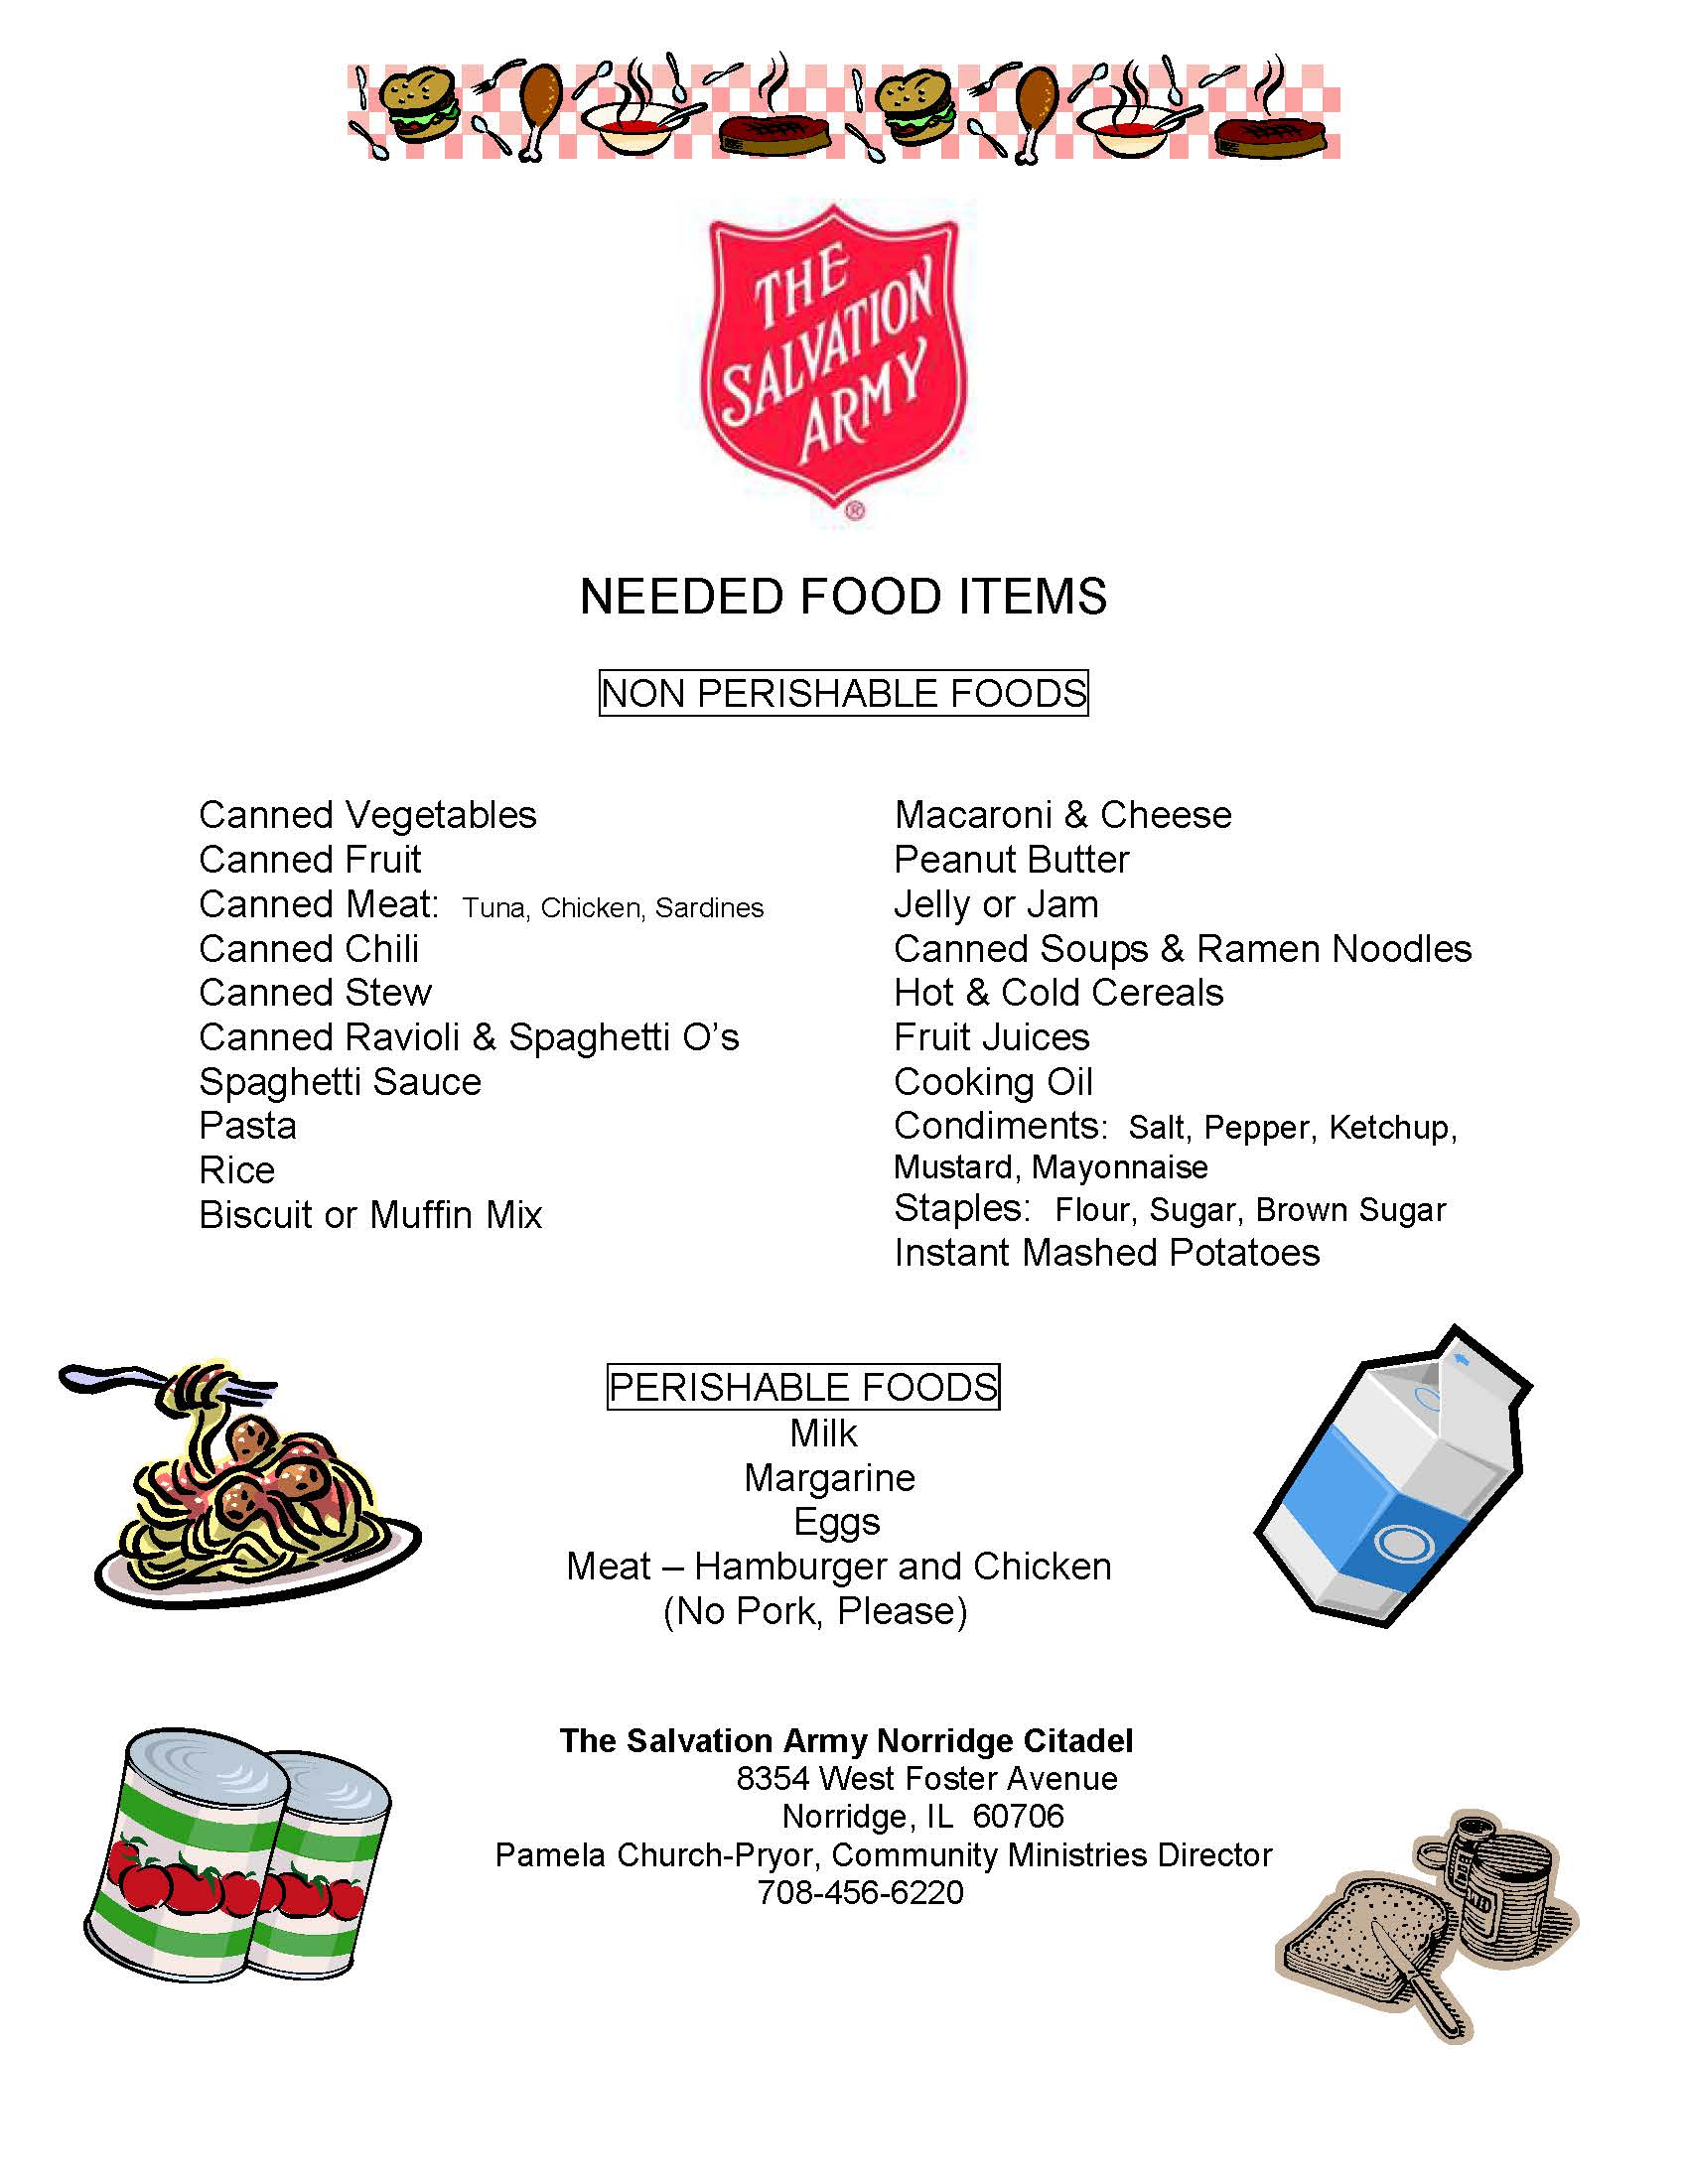 20171110 Food Needed List